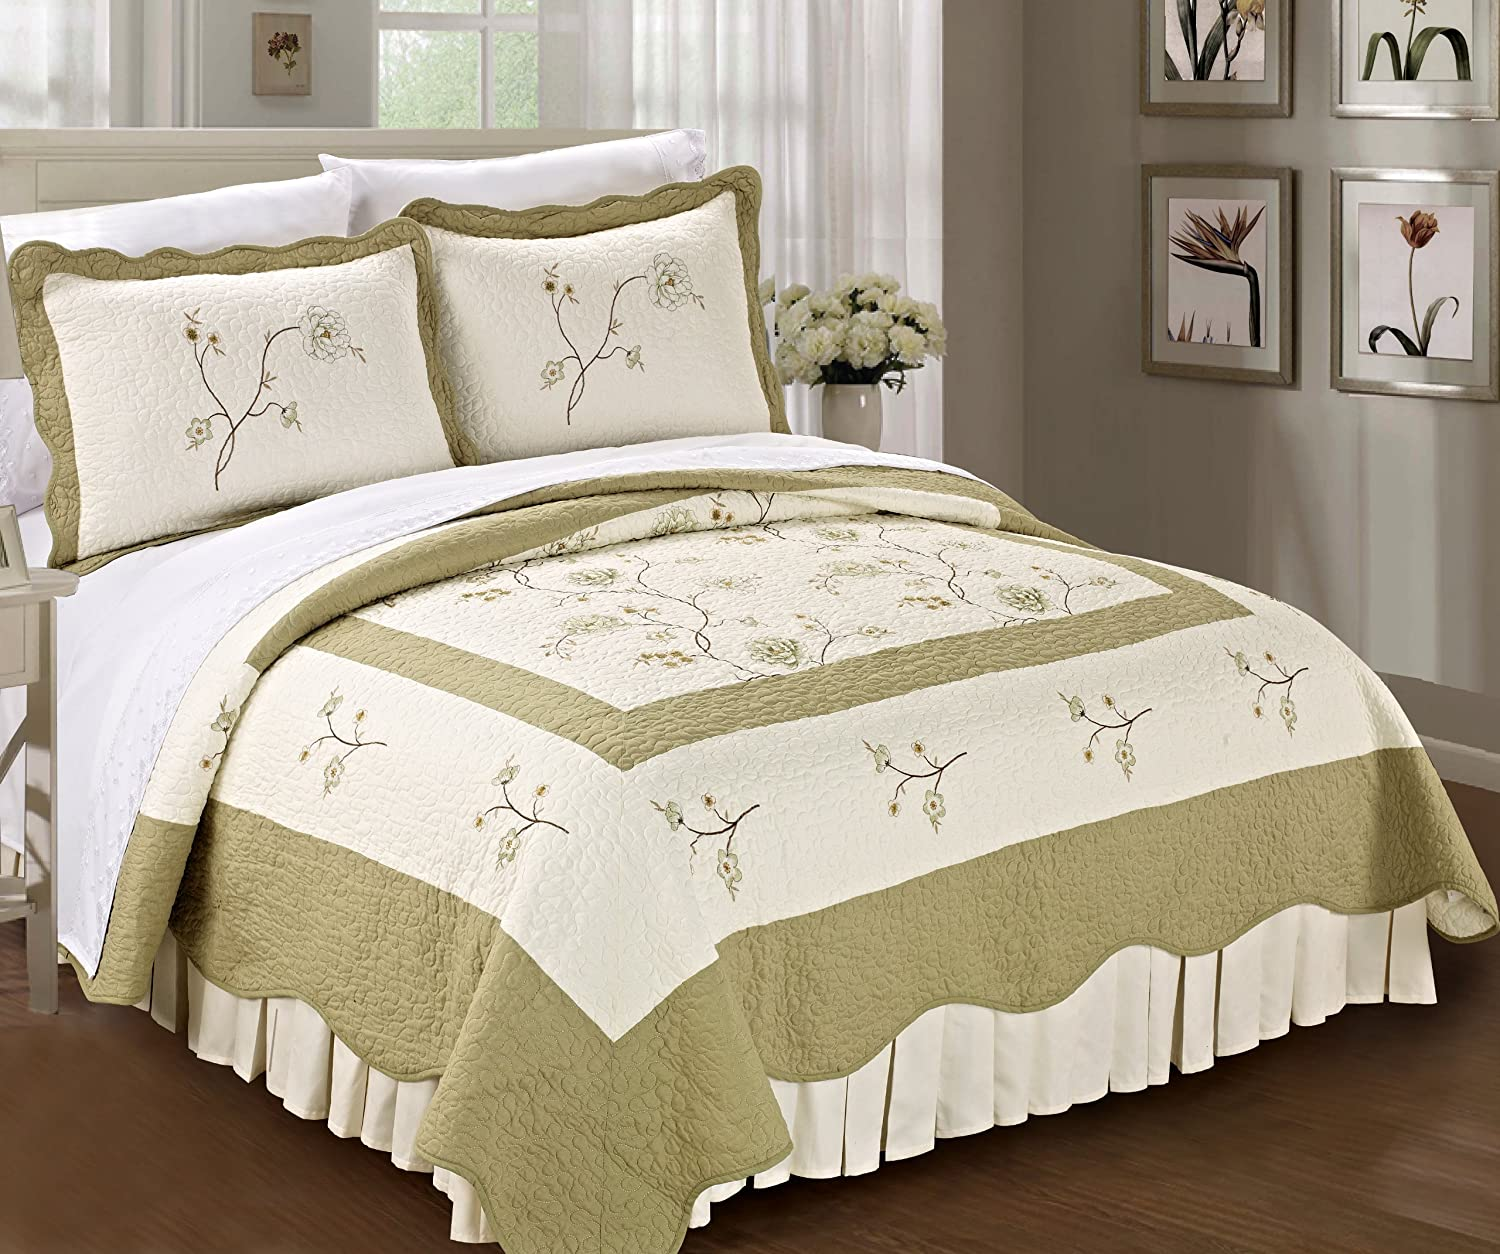 Serenta Classic Prewashed Green Spring Flowers Microfiber Cotton Filled Bedspread Quilt 3 Pieces Bed Set (Queen)